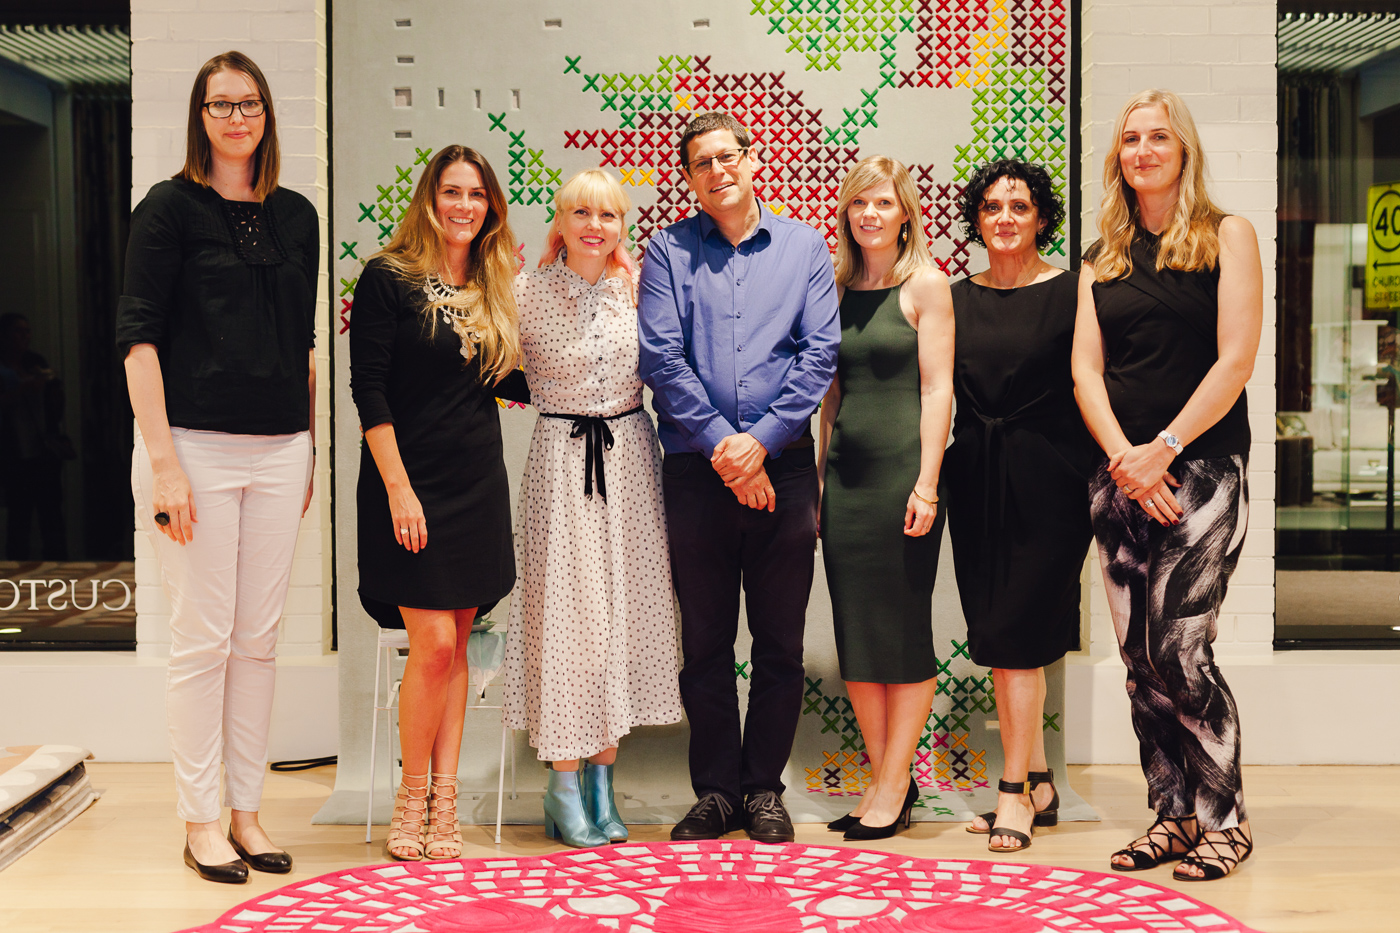 Designer Rugs family | NEW AGAIN by Petrina Turner Design for Designer Rugs | The launch event